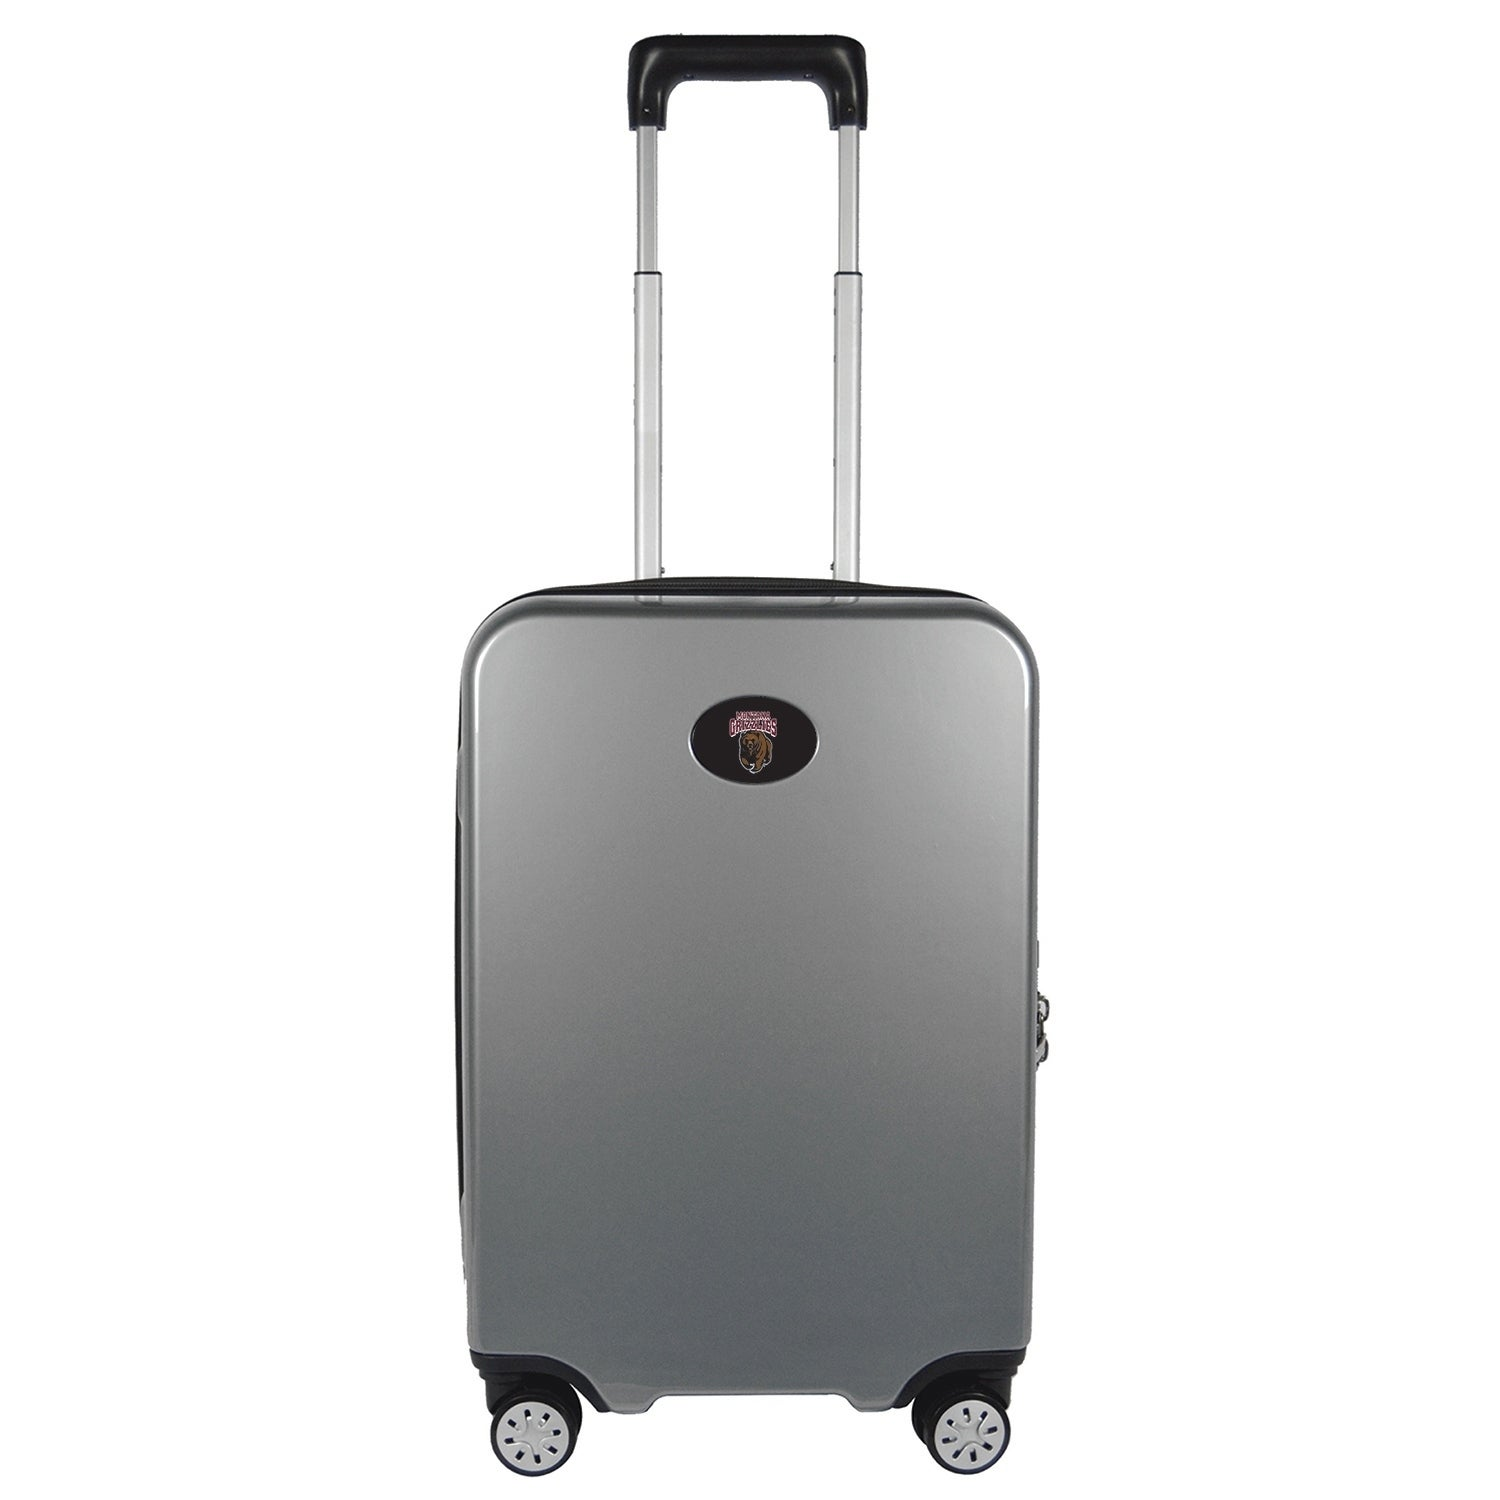 NCAA 21-inch Carry-On Luggage